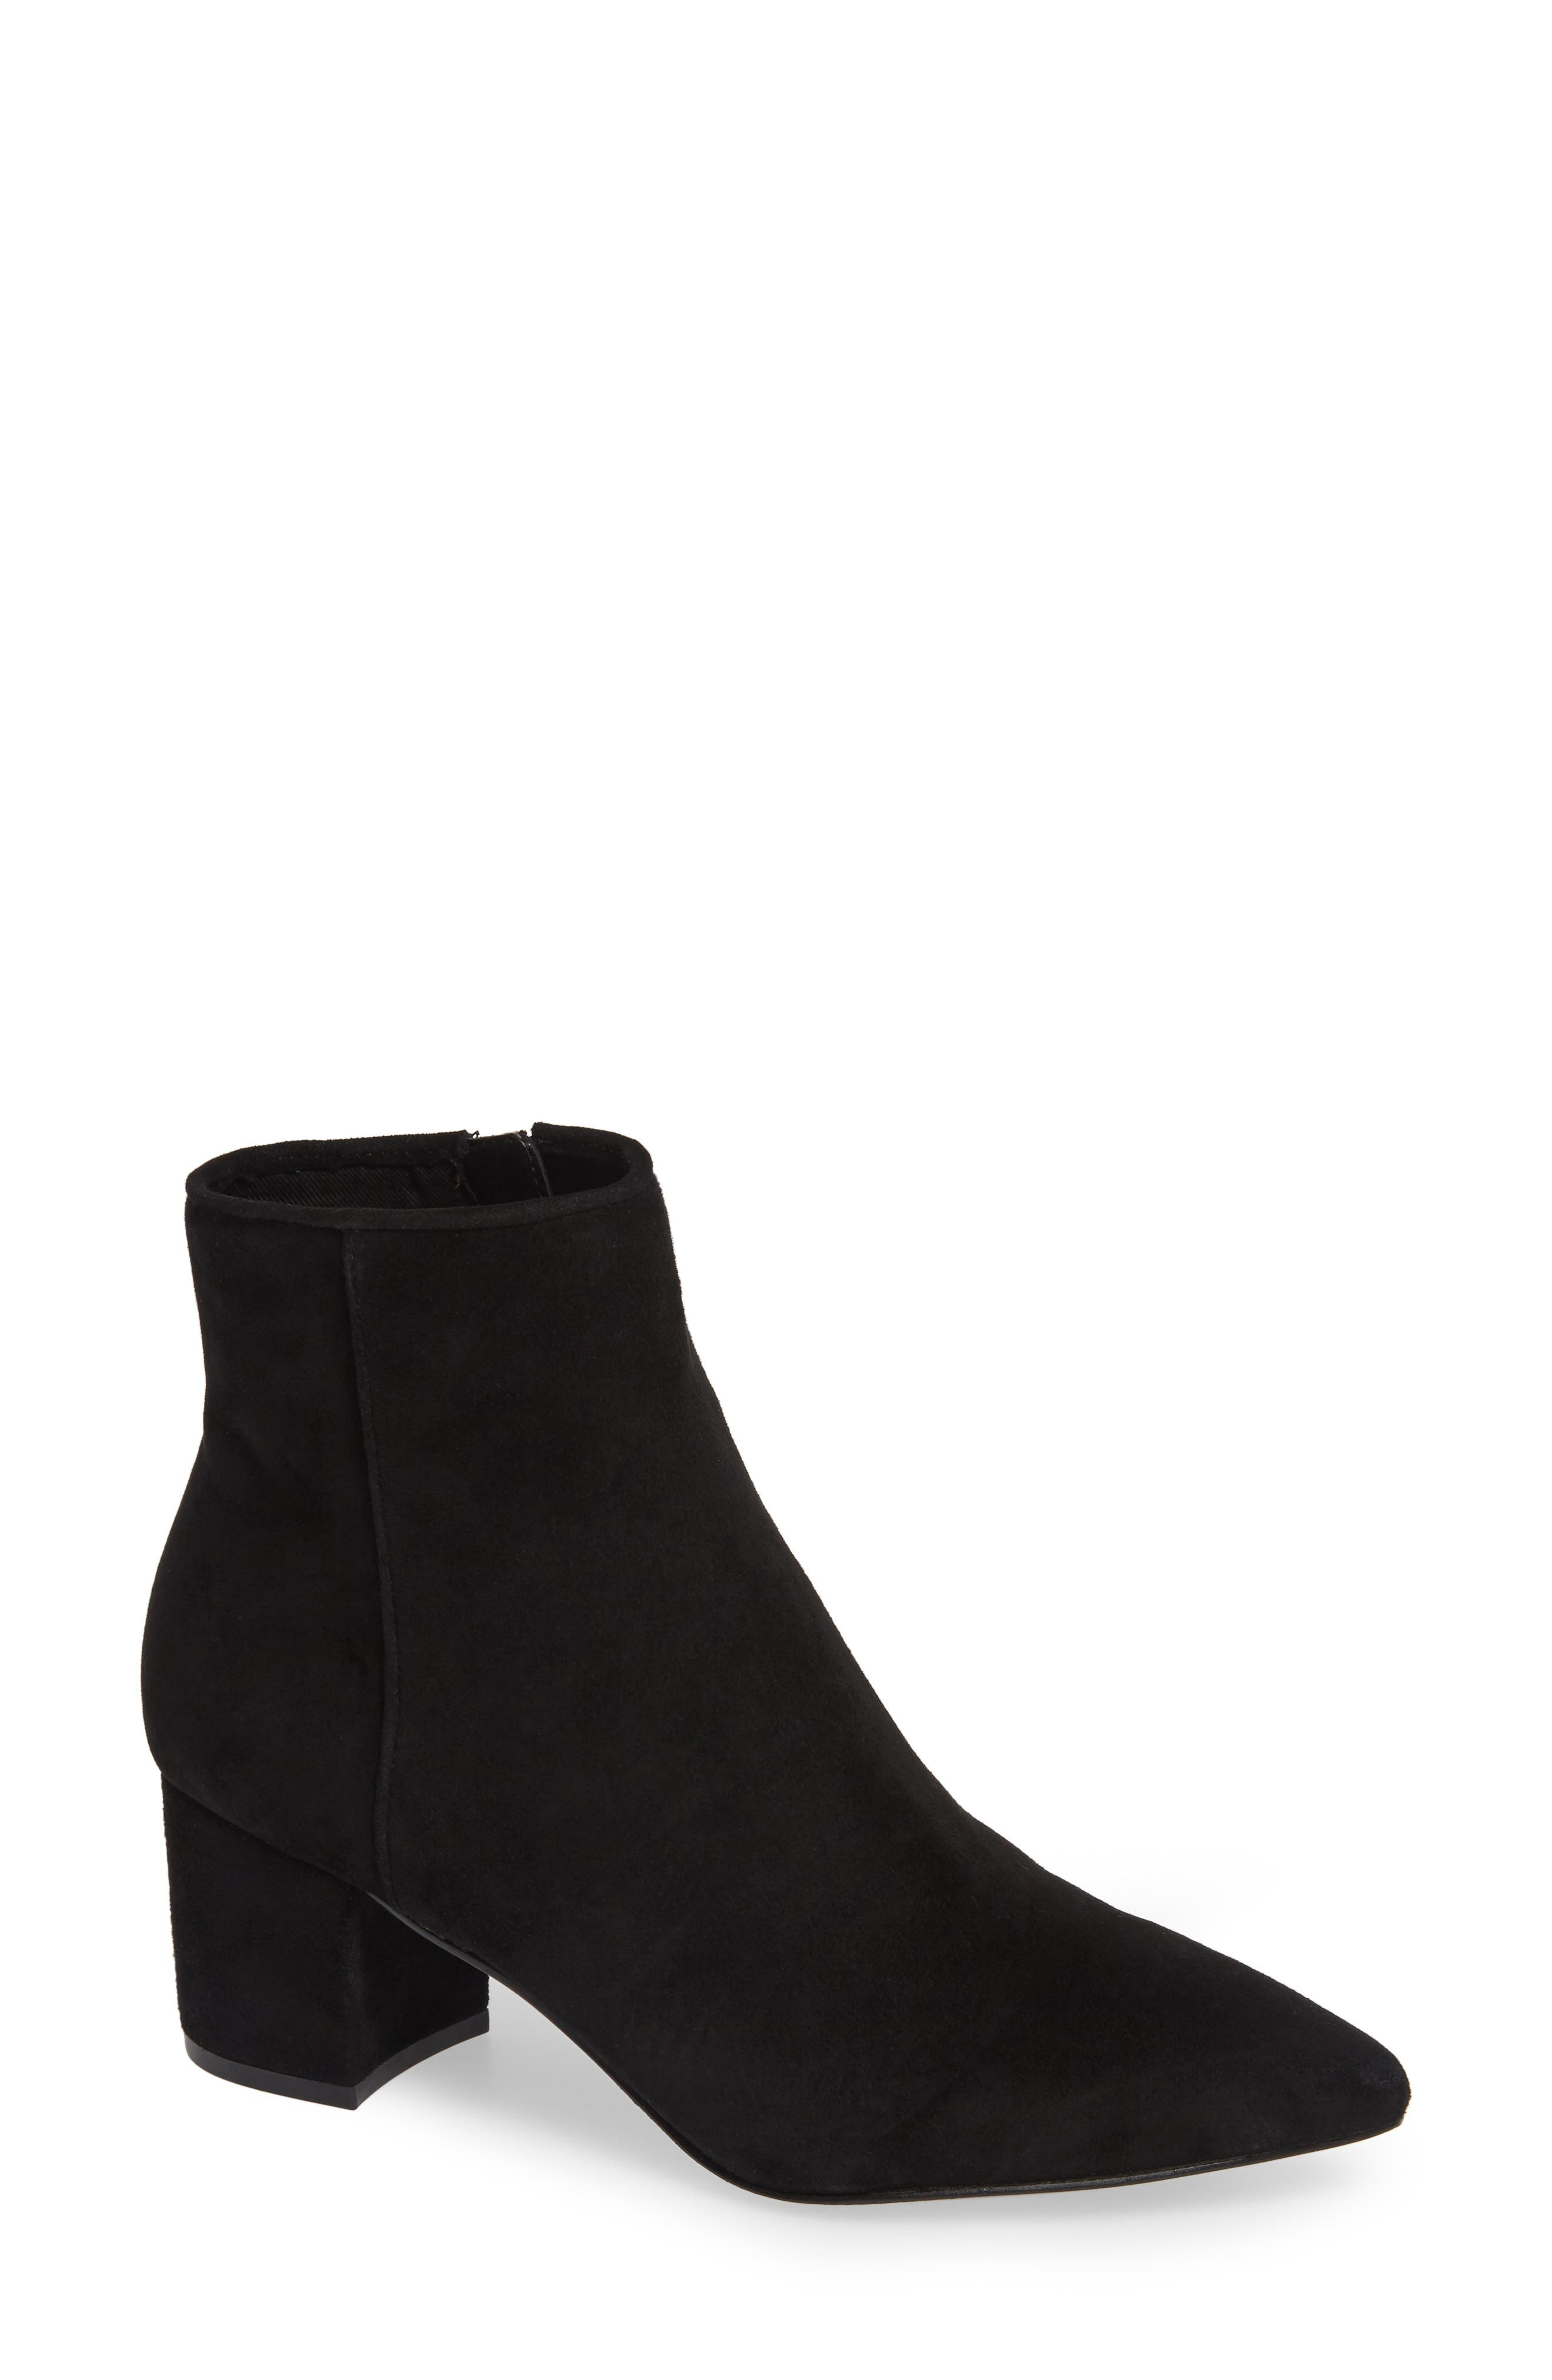 Brave Bootie,                         Main,                         color, 006